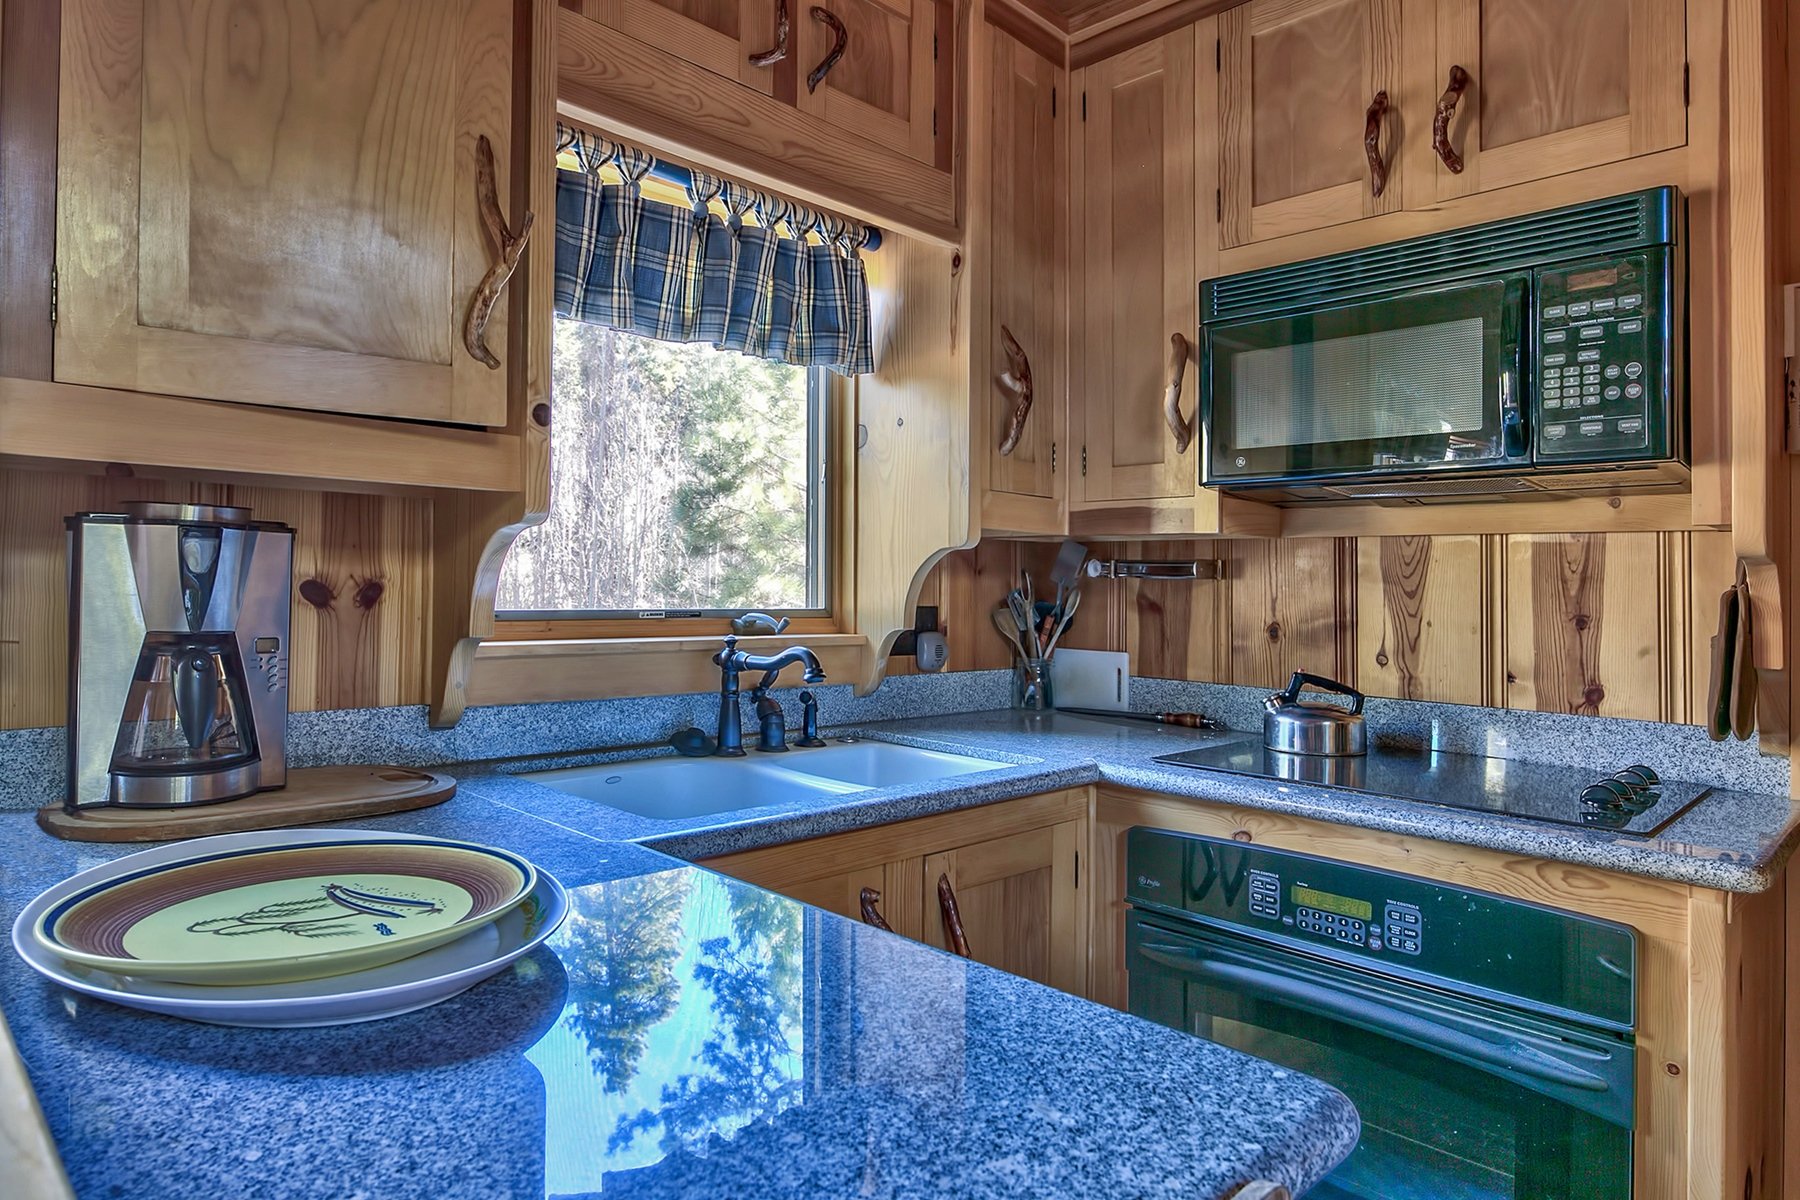 Additional photo for property listing at 1141 Fallen Leaf Road, South Lake Tahoe, CA 96150 1141 Fallen Leaf Road South Lake Tahoe, California 96150 United States